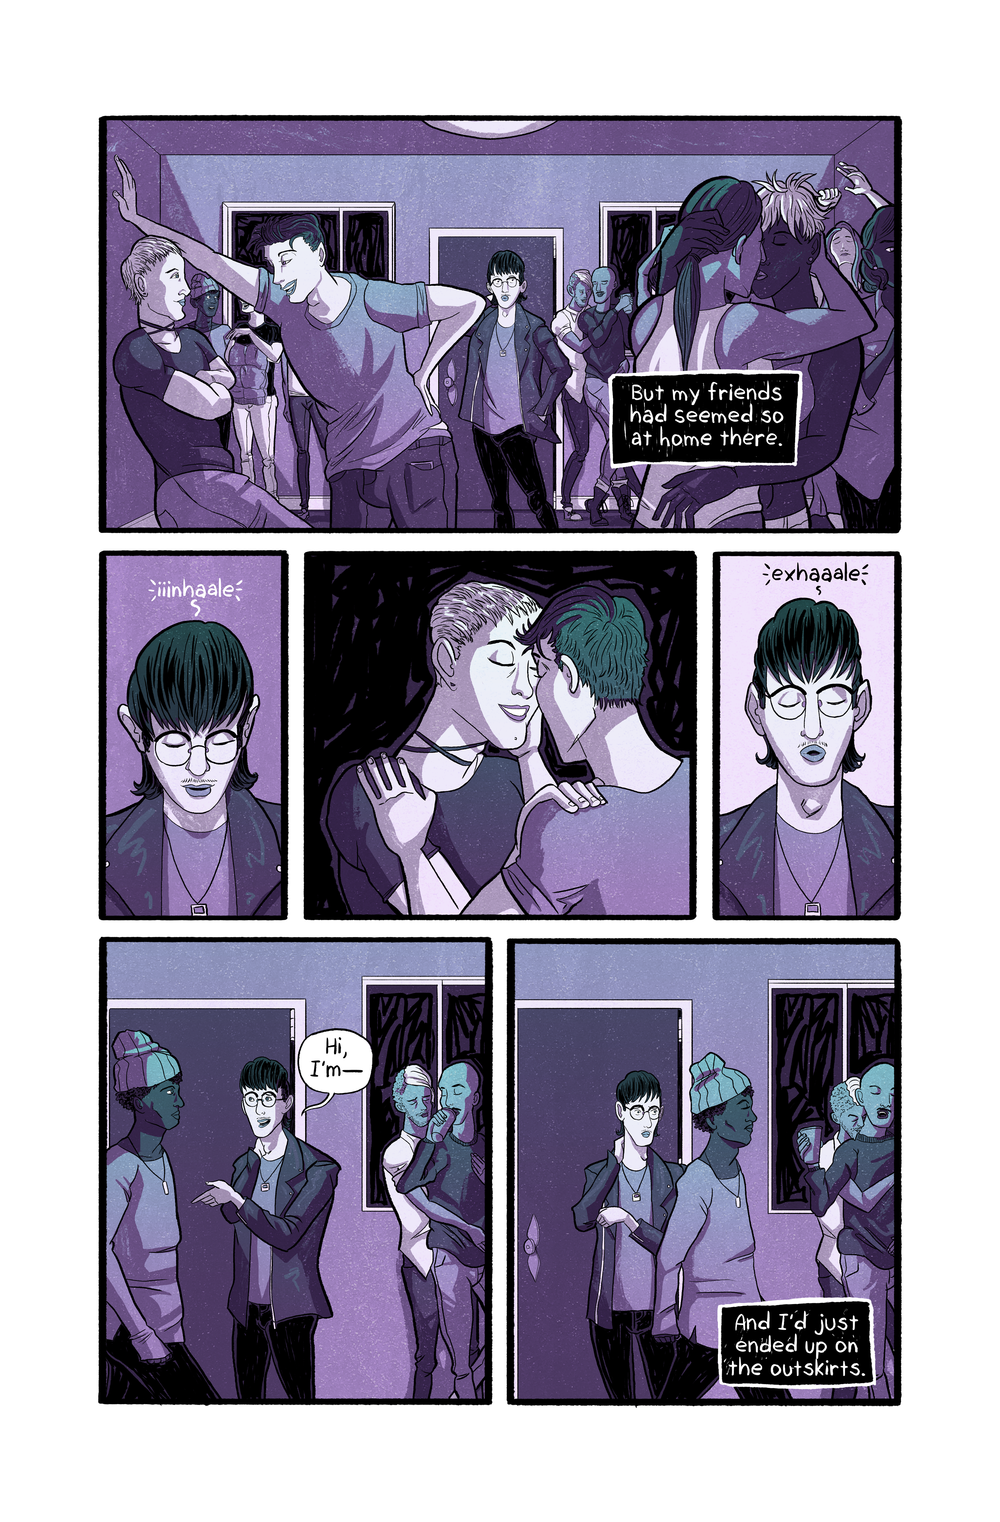 02untitled sad gay boy comic - page 04.png